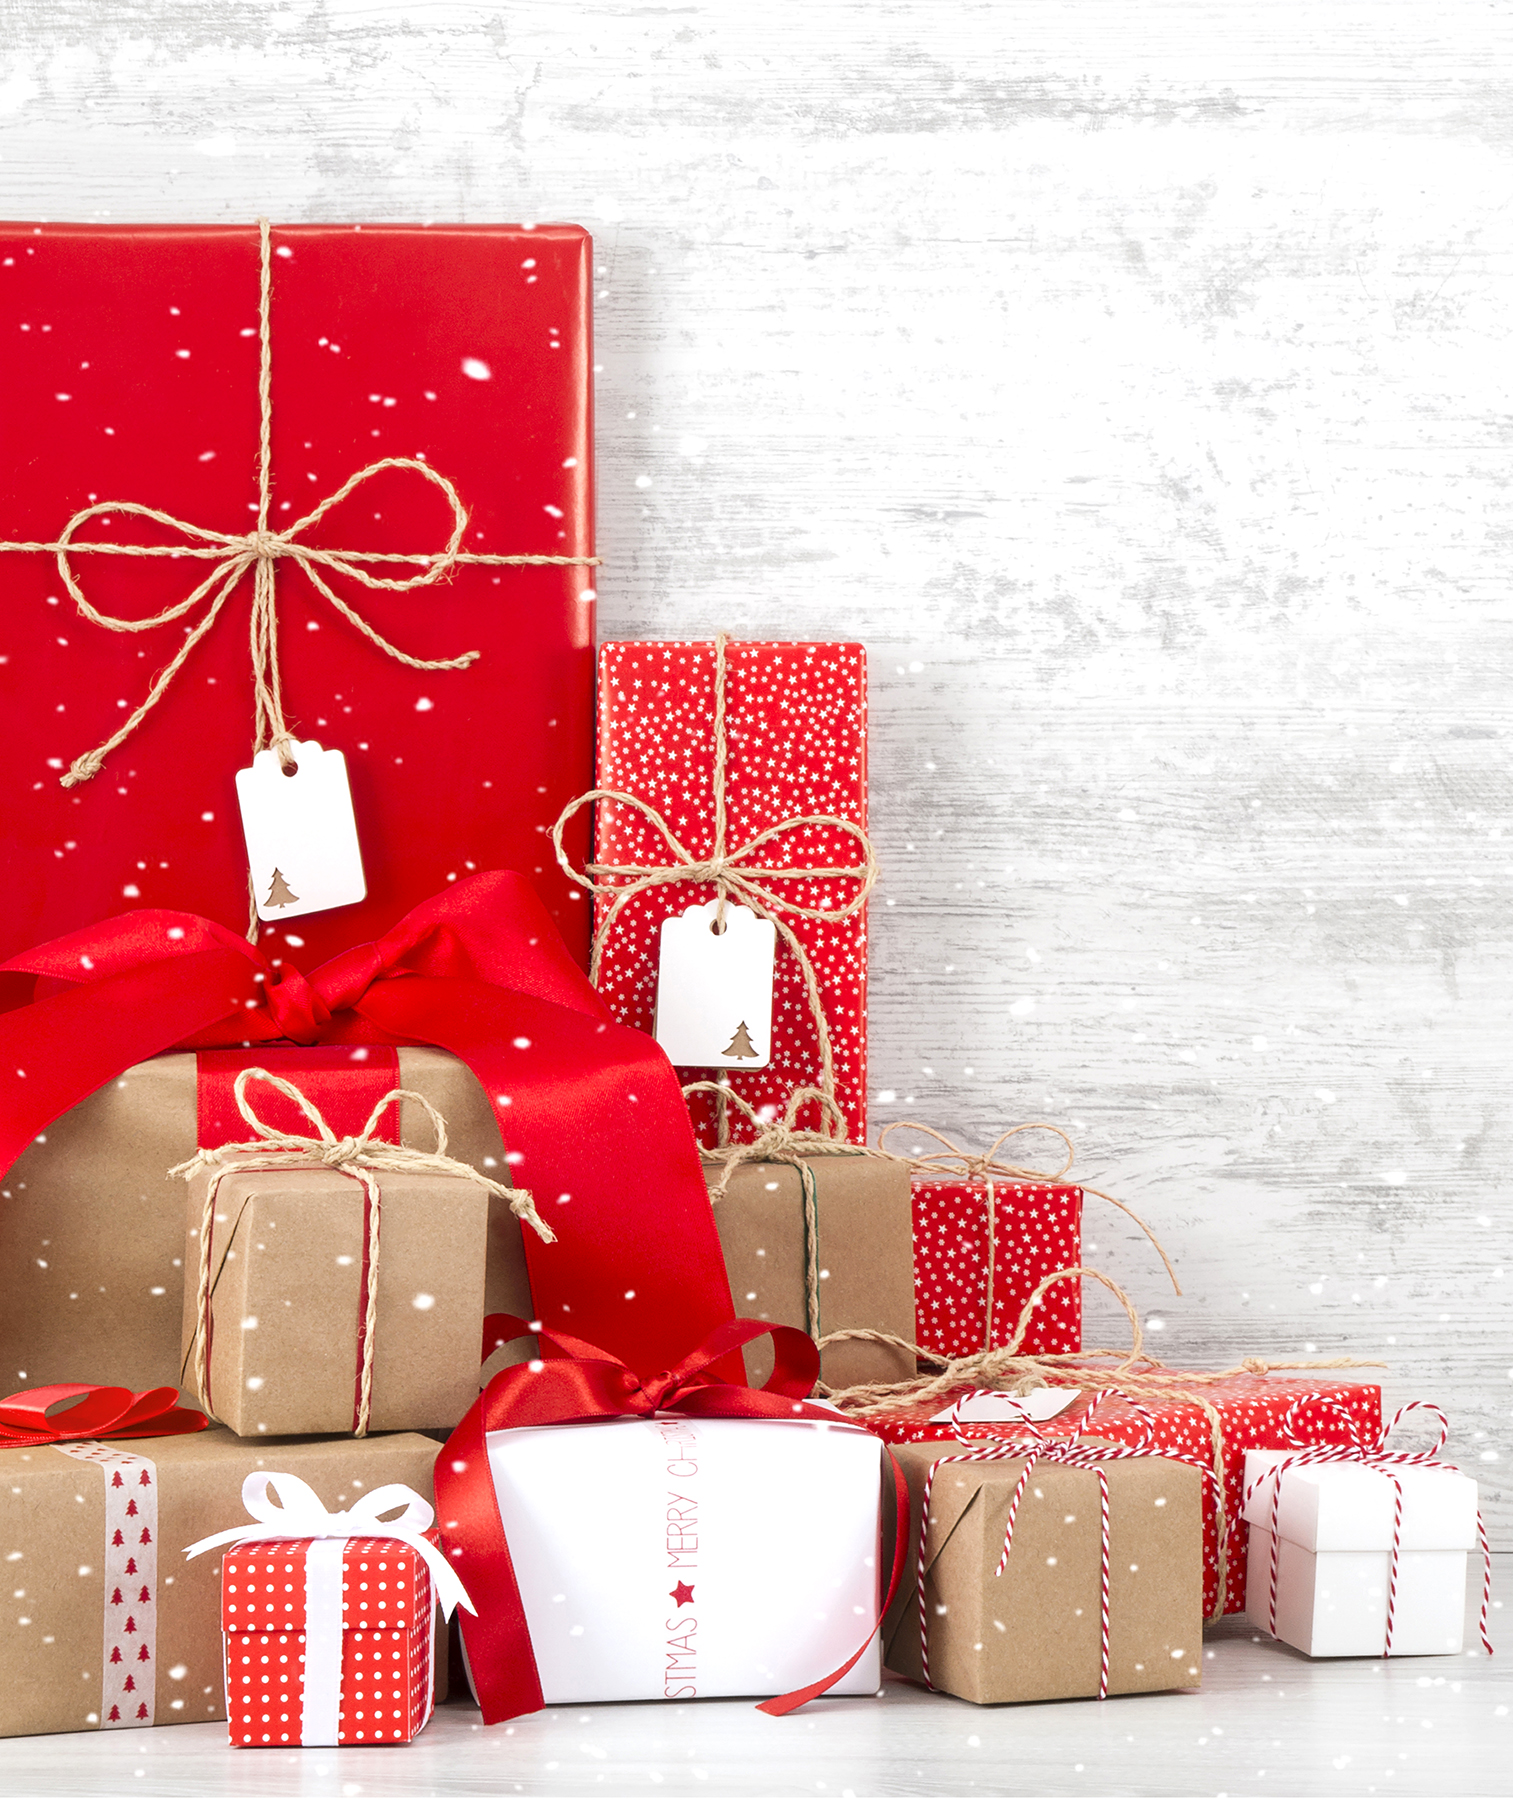 christmas gift ideas real simple https www realsimple com holidays entertaining holidays christmas gift ideas